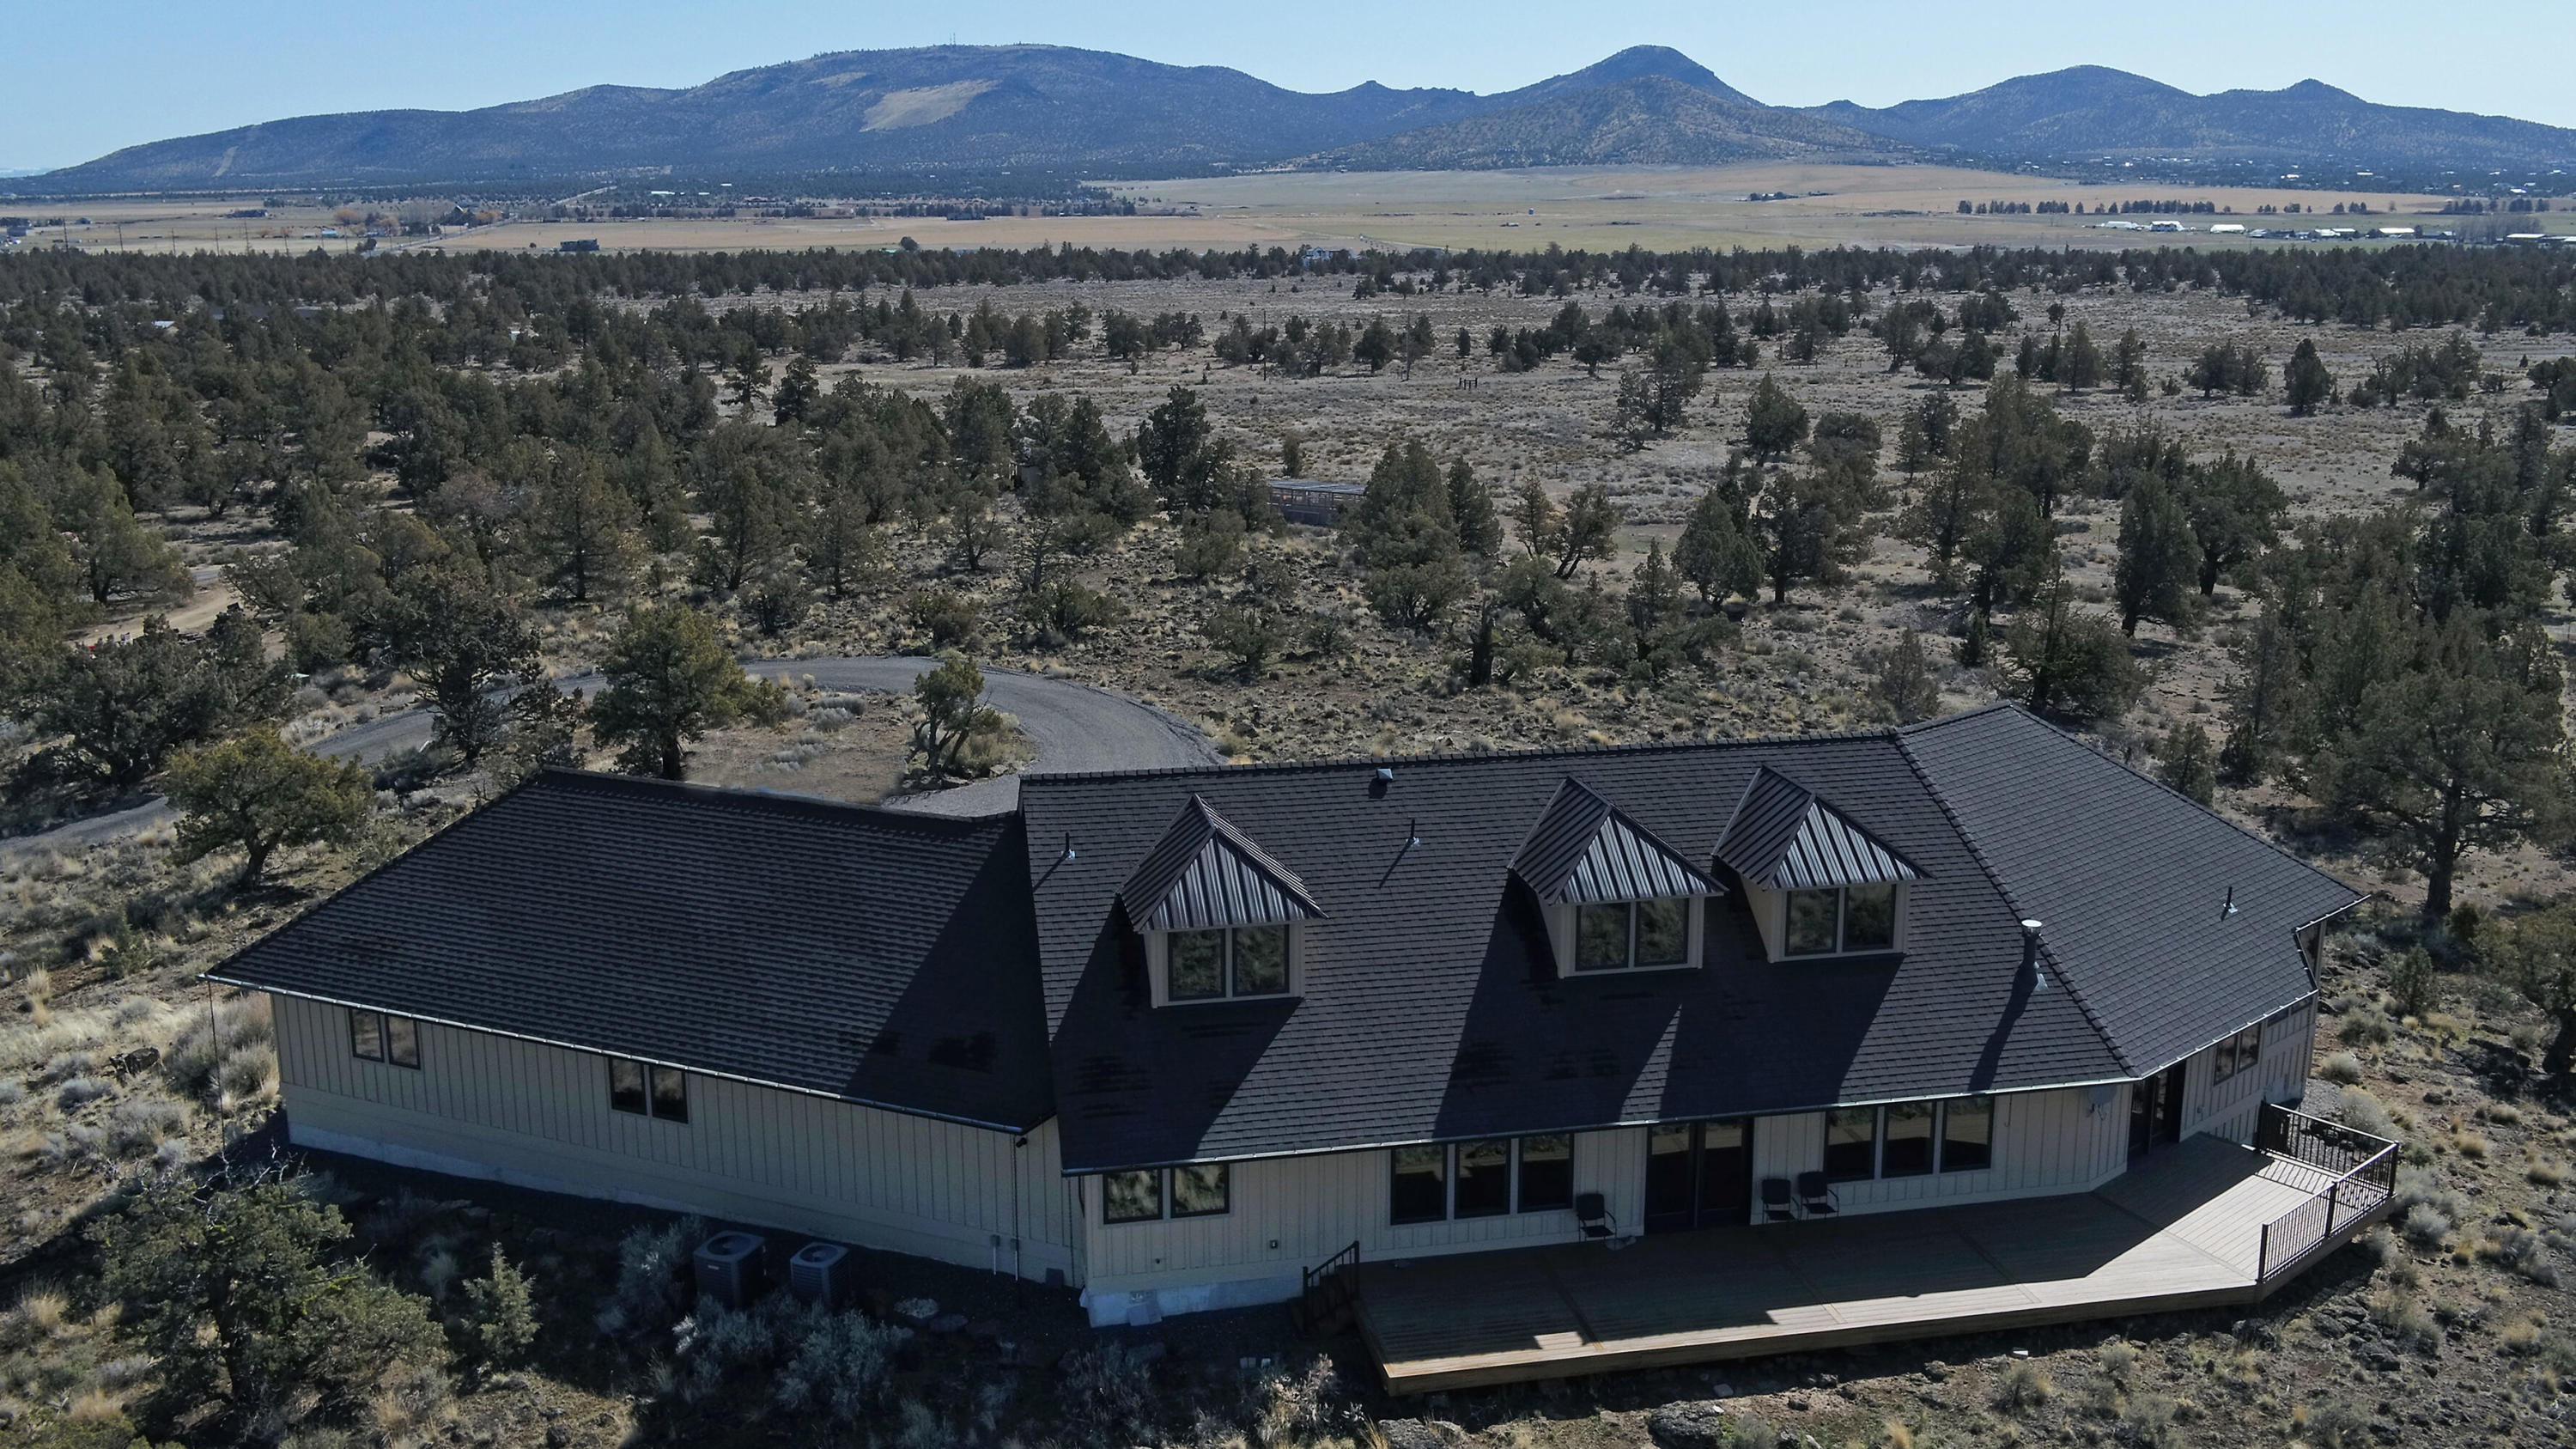 Total privacy, sweeping mountain views, 1000's of acres of public lands, once in a lifetime opportunity for a private well built home on 40 acres. Huge great room, main level living, tripe car garage, solid 2x10 construction, 12x24 horse shed, RV hookup, fenced perimeter. This is one special property.